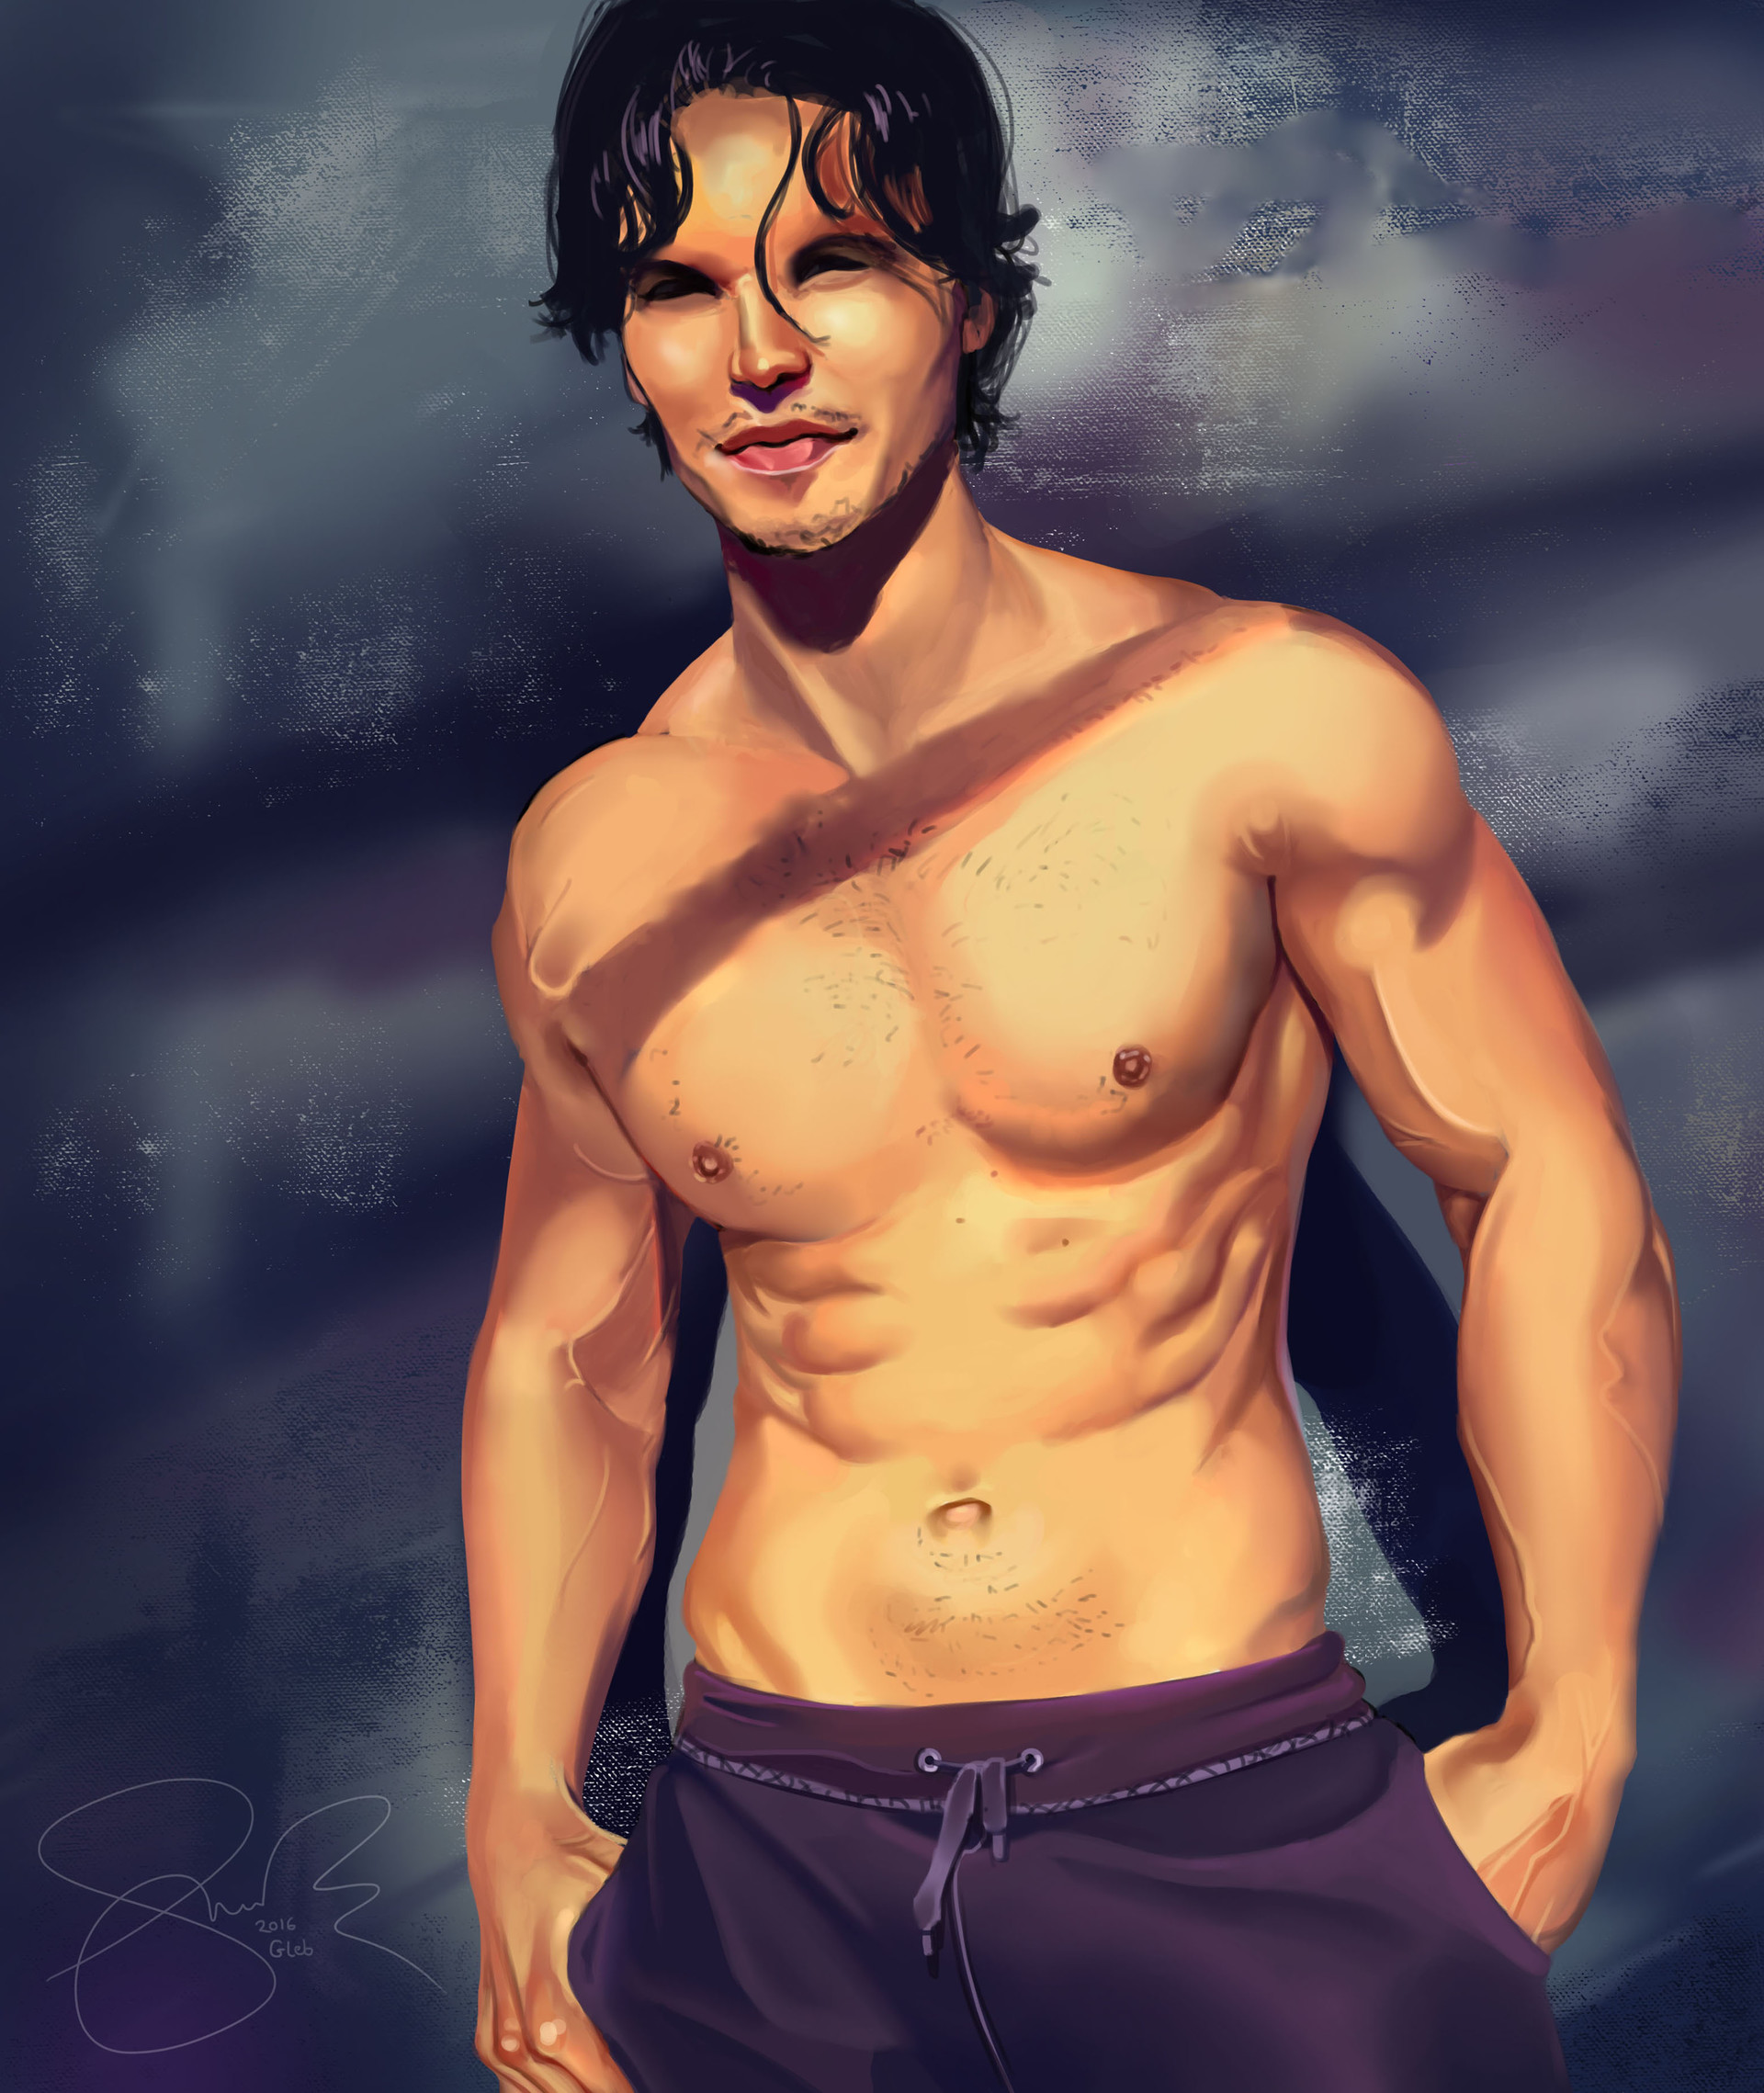 Shellz art gleb savchenko 2